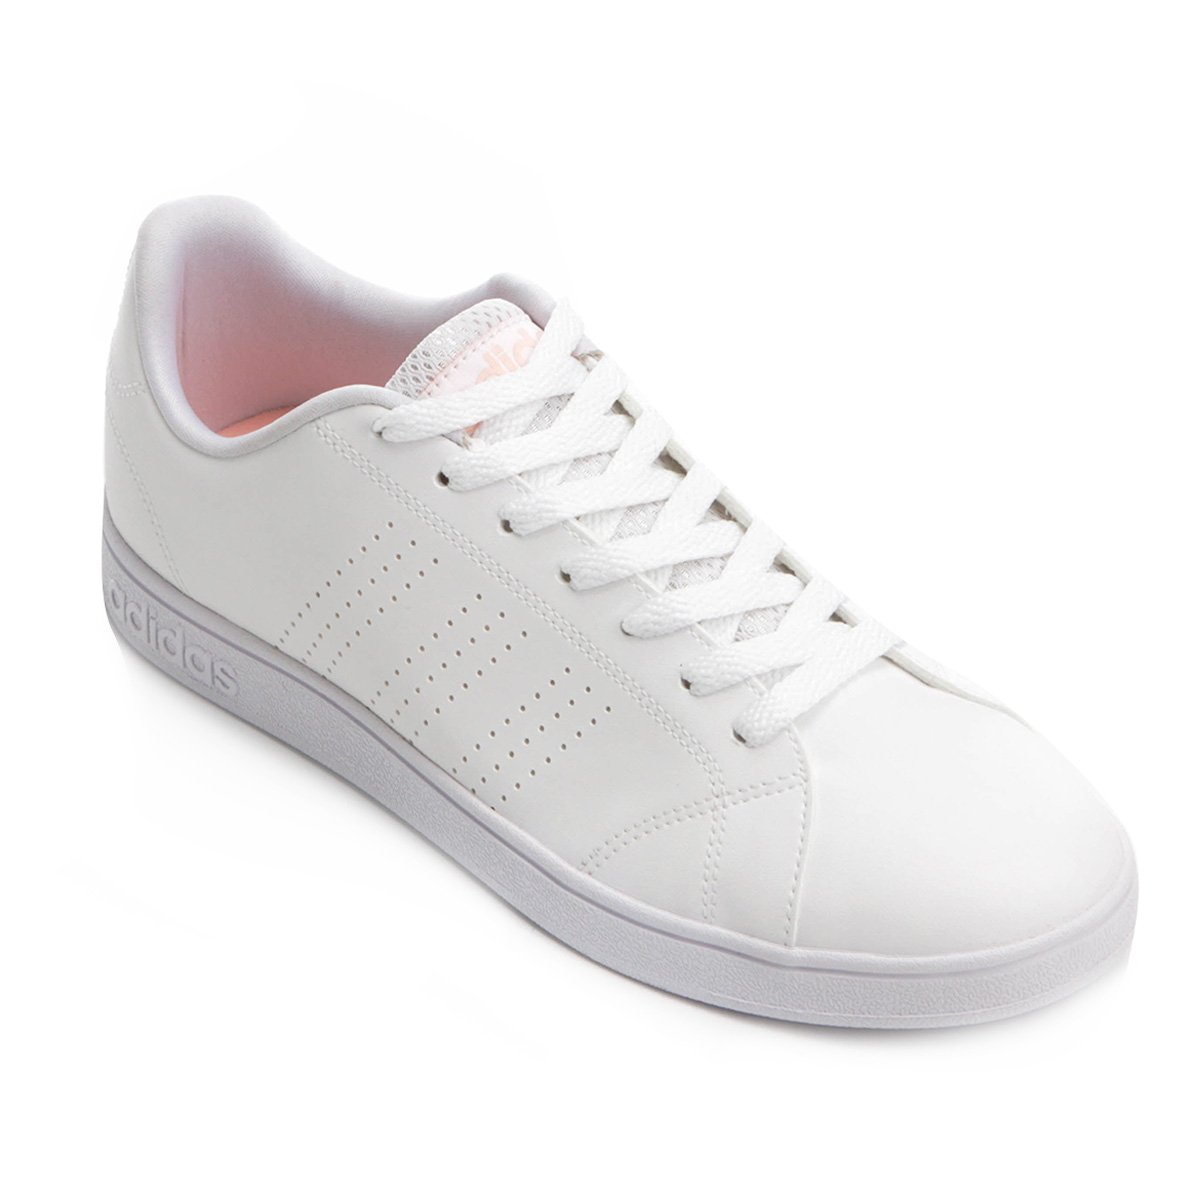 Tênis Adidas Vs Advantage Clean Feminino 529853c8f6152